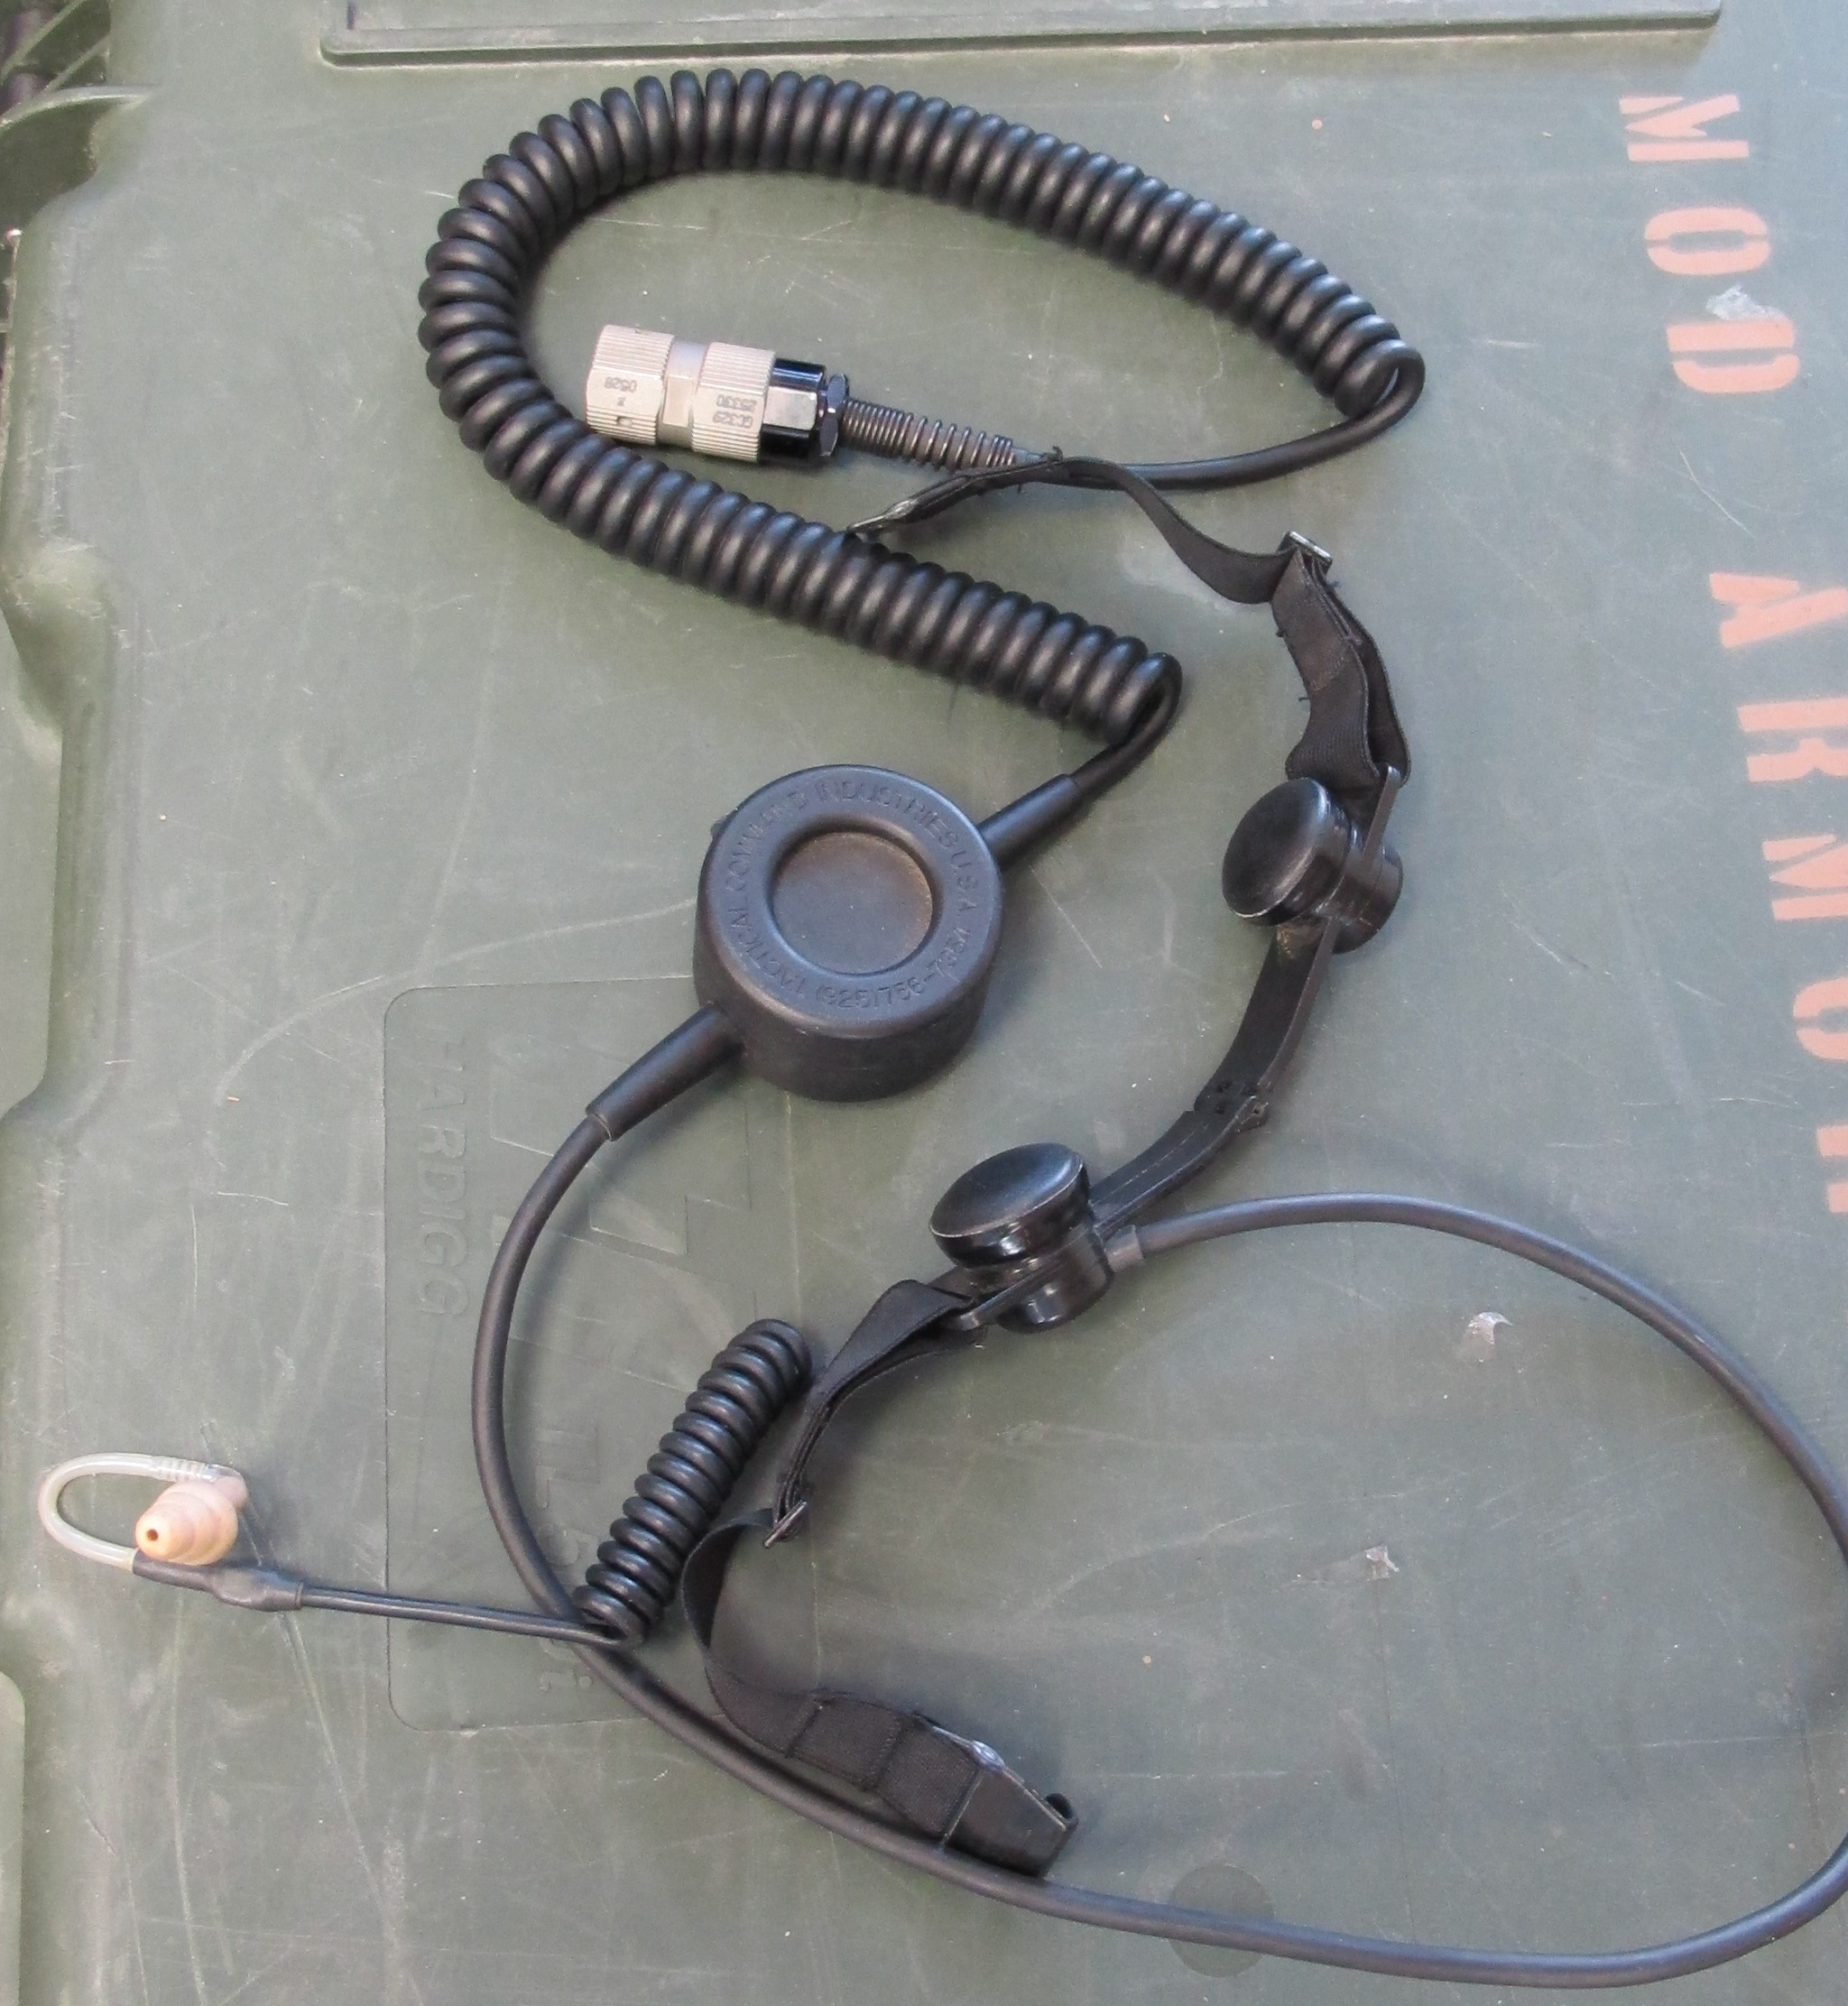 Military Tactical Command PTT Push to Talk & Throat Mic MBITR